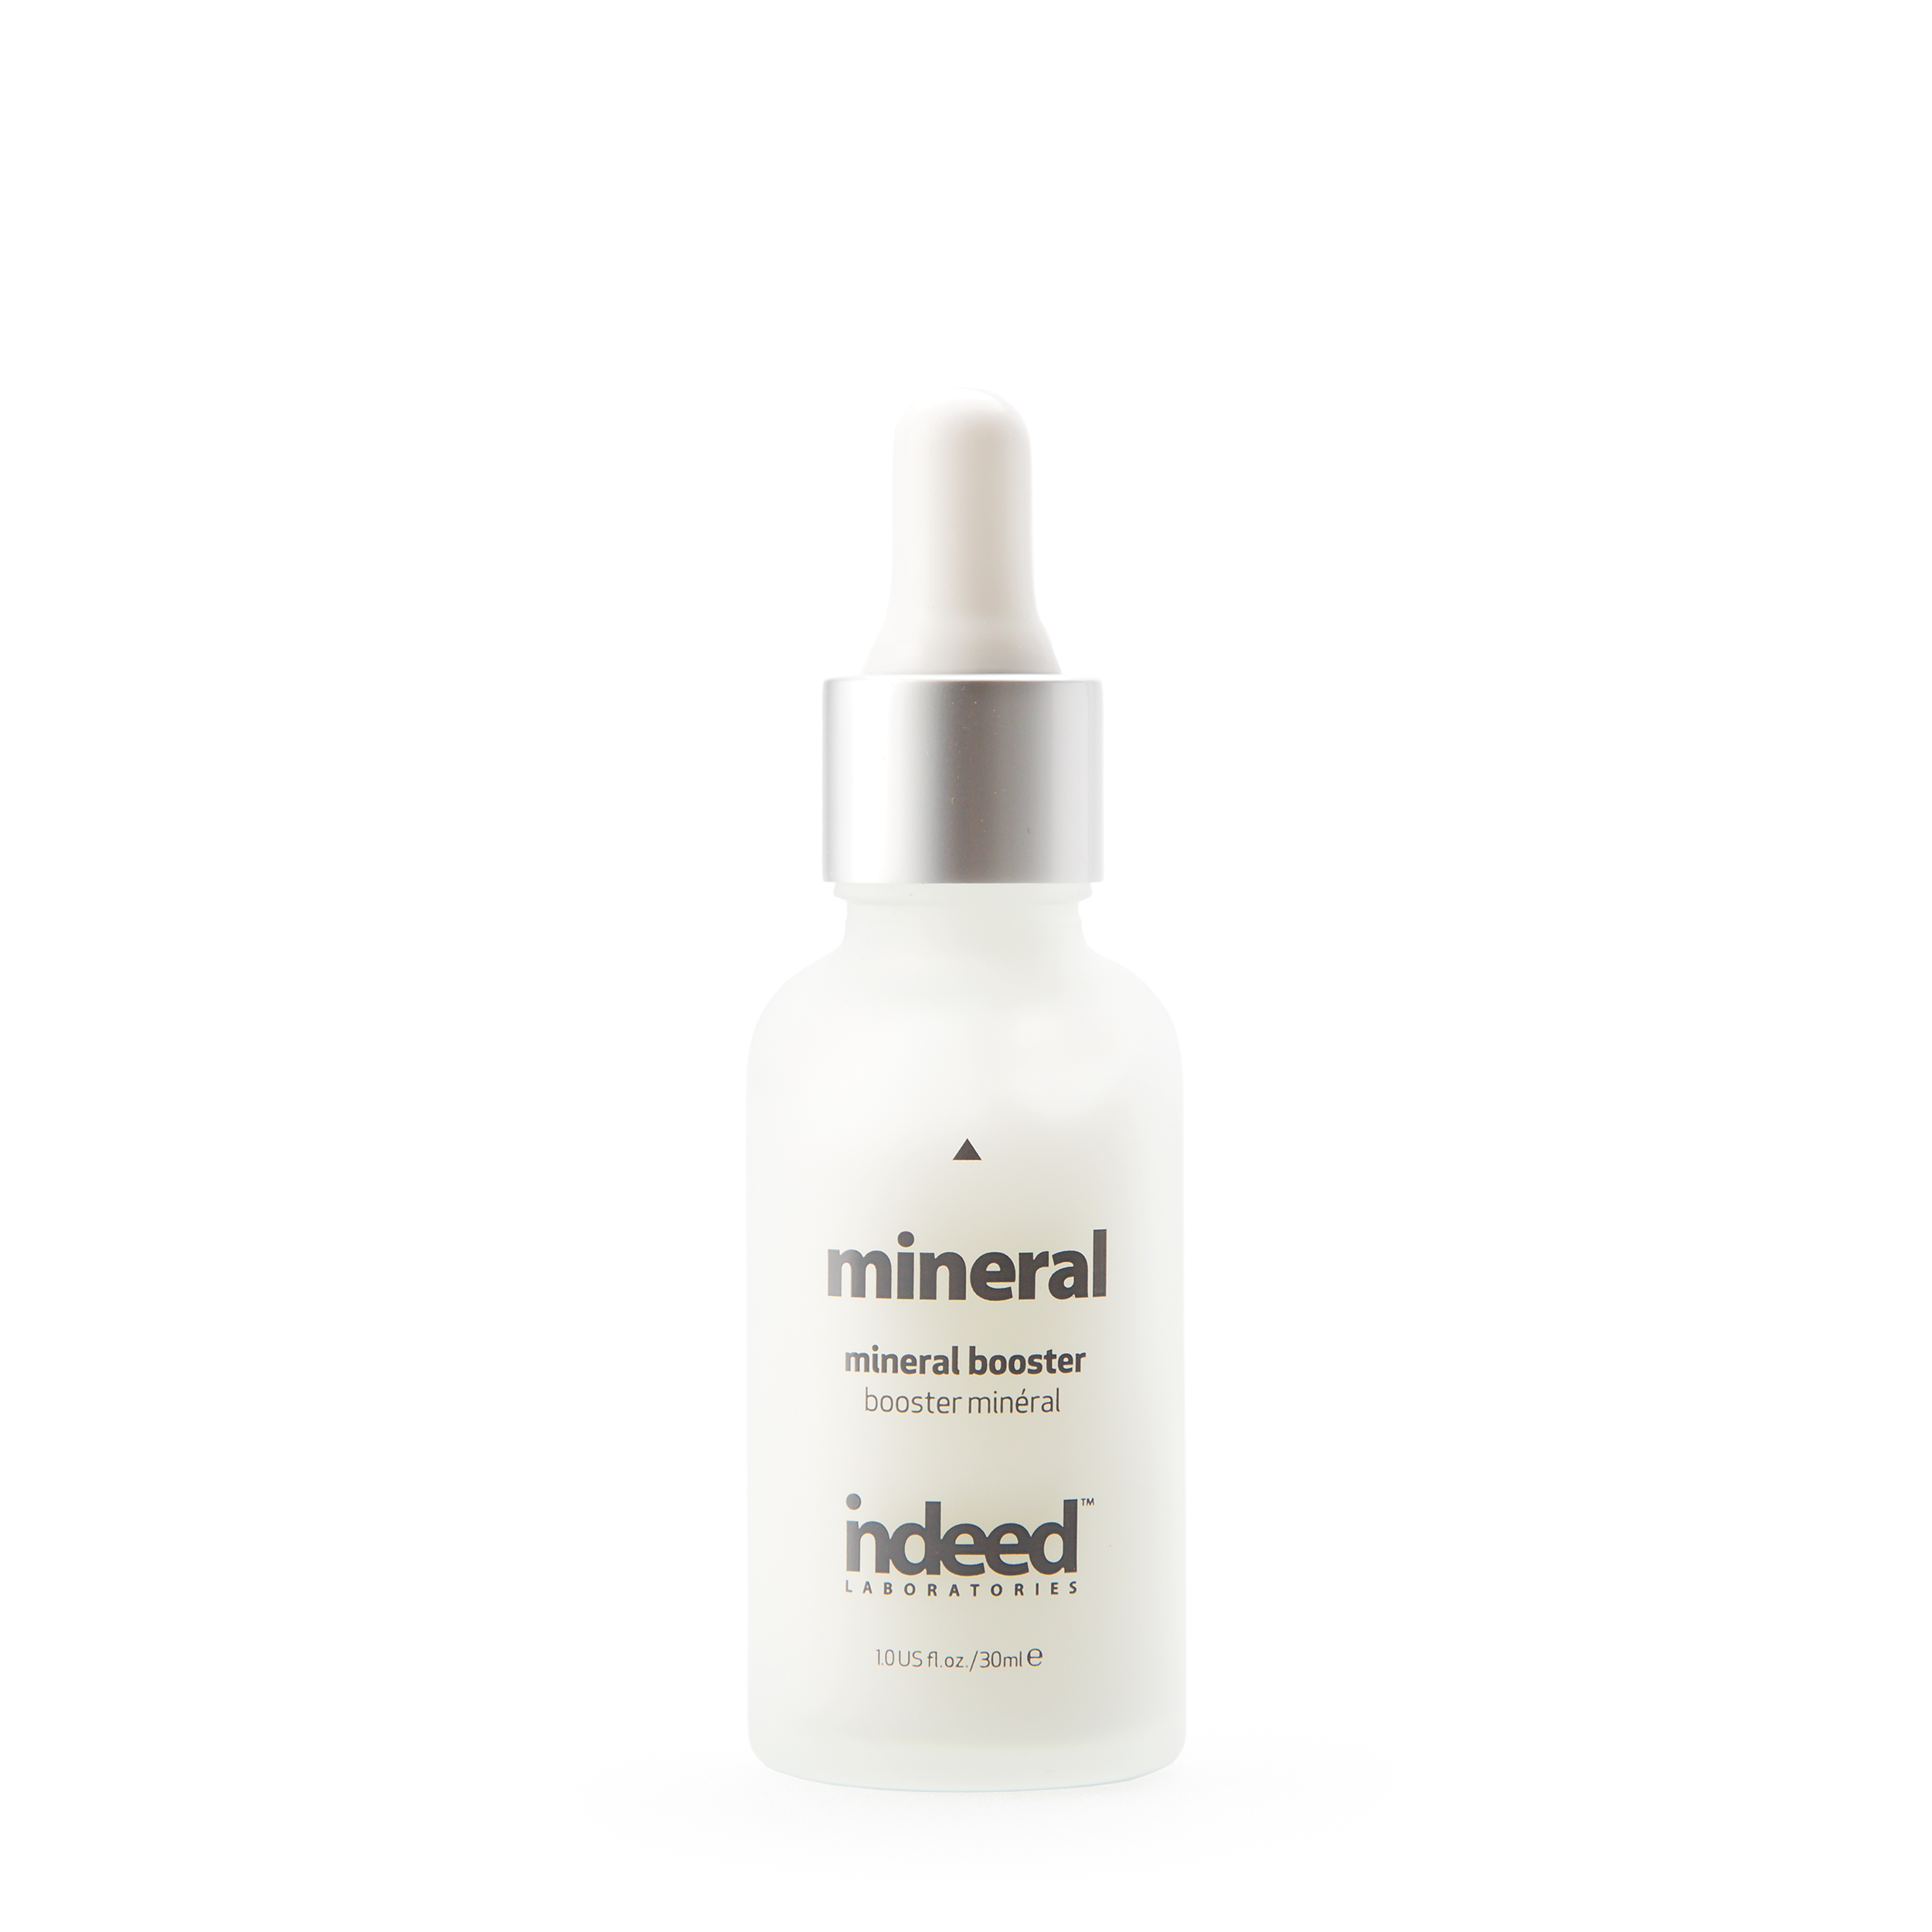 Indeed laboratories Сыворотка «Mineral Booster» 30 мл фото